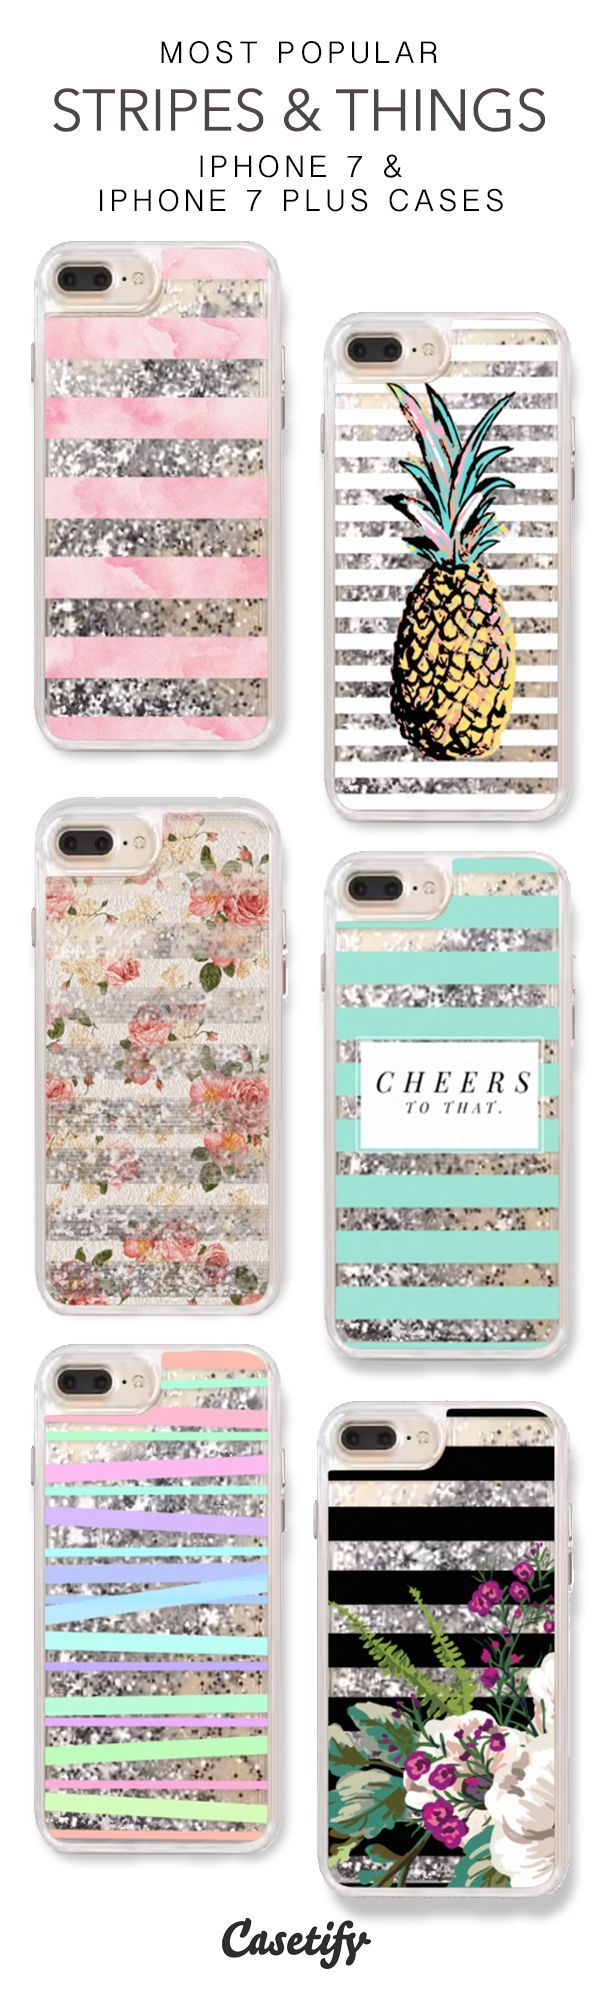 Most Popular Stripes & Things iPhone 7 Cases & iPhone 7 Plus Cases. More liquid glitter iPhone case here > https://www.casetify.com/en_US/collections/iphone-7-glitter-cases#/?vc=n7aQ9dXB6q #PhoneCase